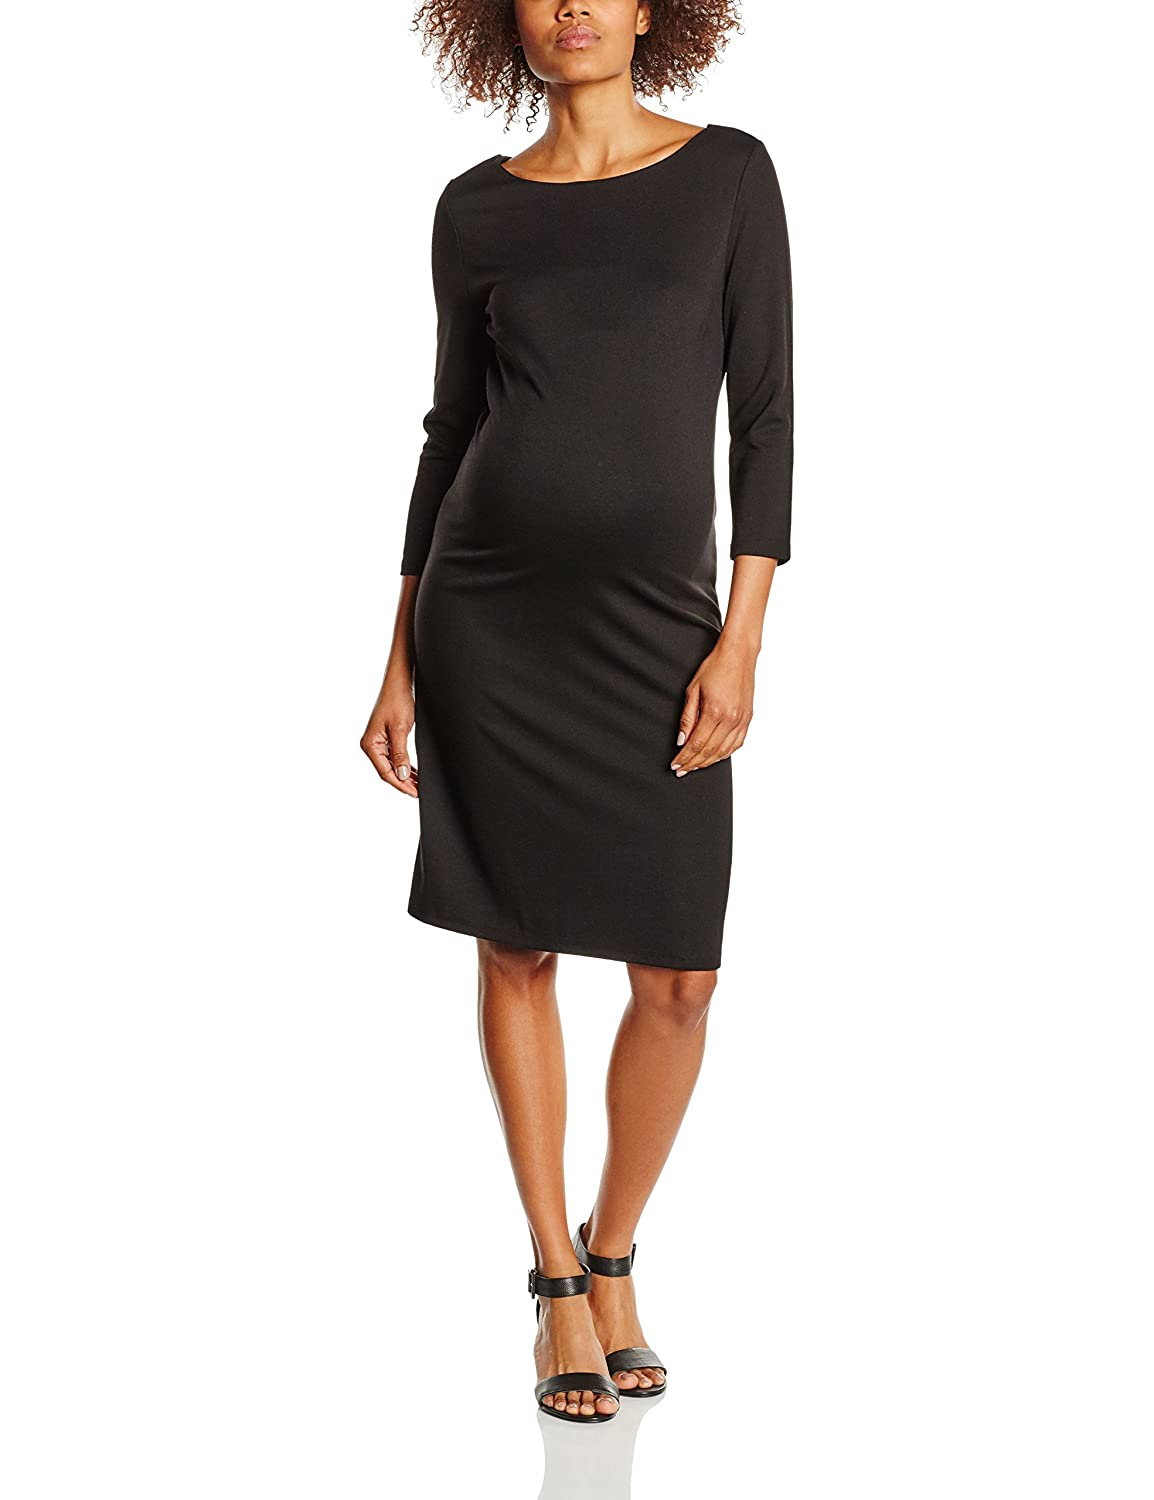 Noppies Damen Umstandskleid Dress 3/4 Slv